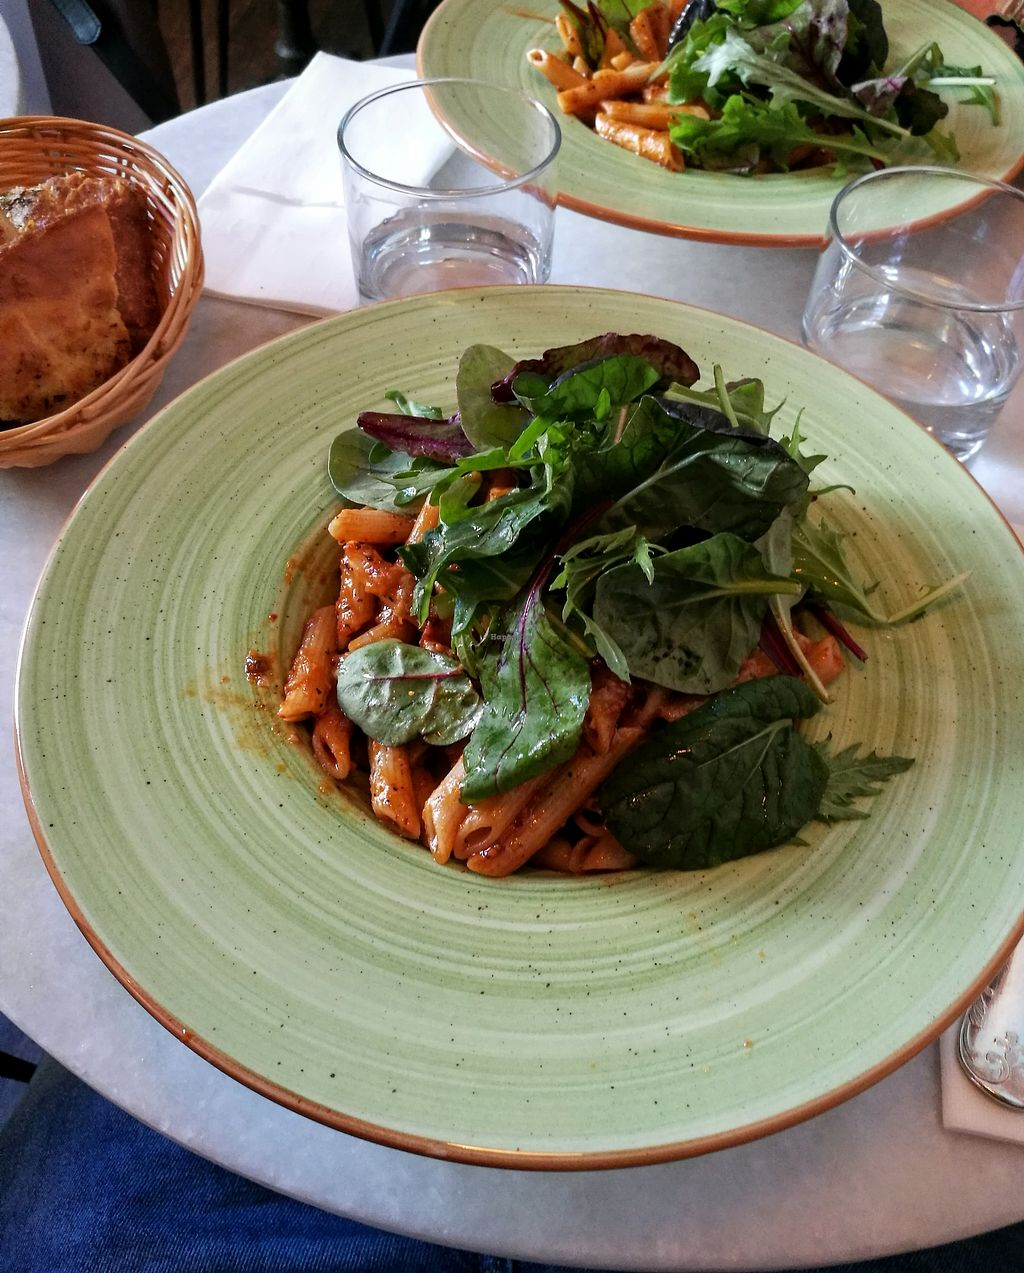 """Photo of Grön Mat & Deli  by <a href=""""/members/profile/Aladoran"""">Aladoran</a> <br/>Vegopasta with tomato sauce, salad and vegan garlic bread <br/> July 1, 2017  - <a href='/contact/abuse/image/95036/275565'>Report</a>"""